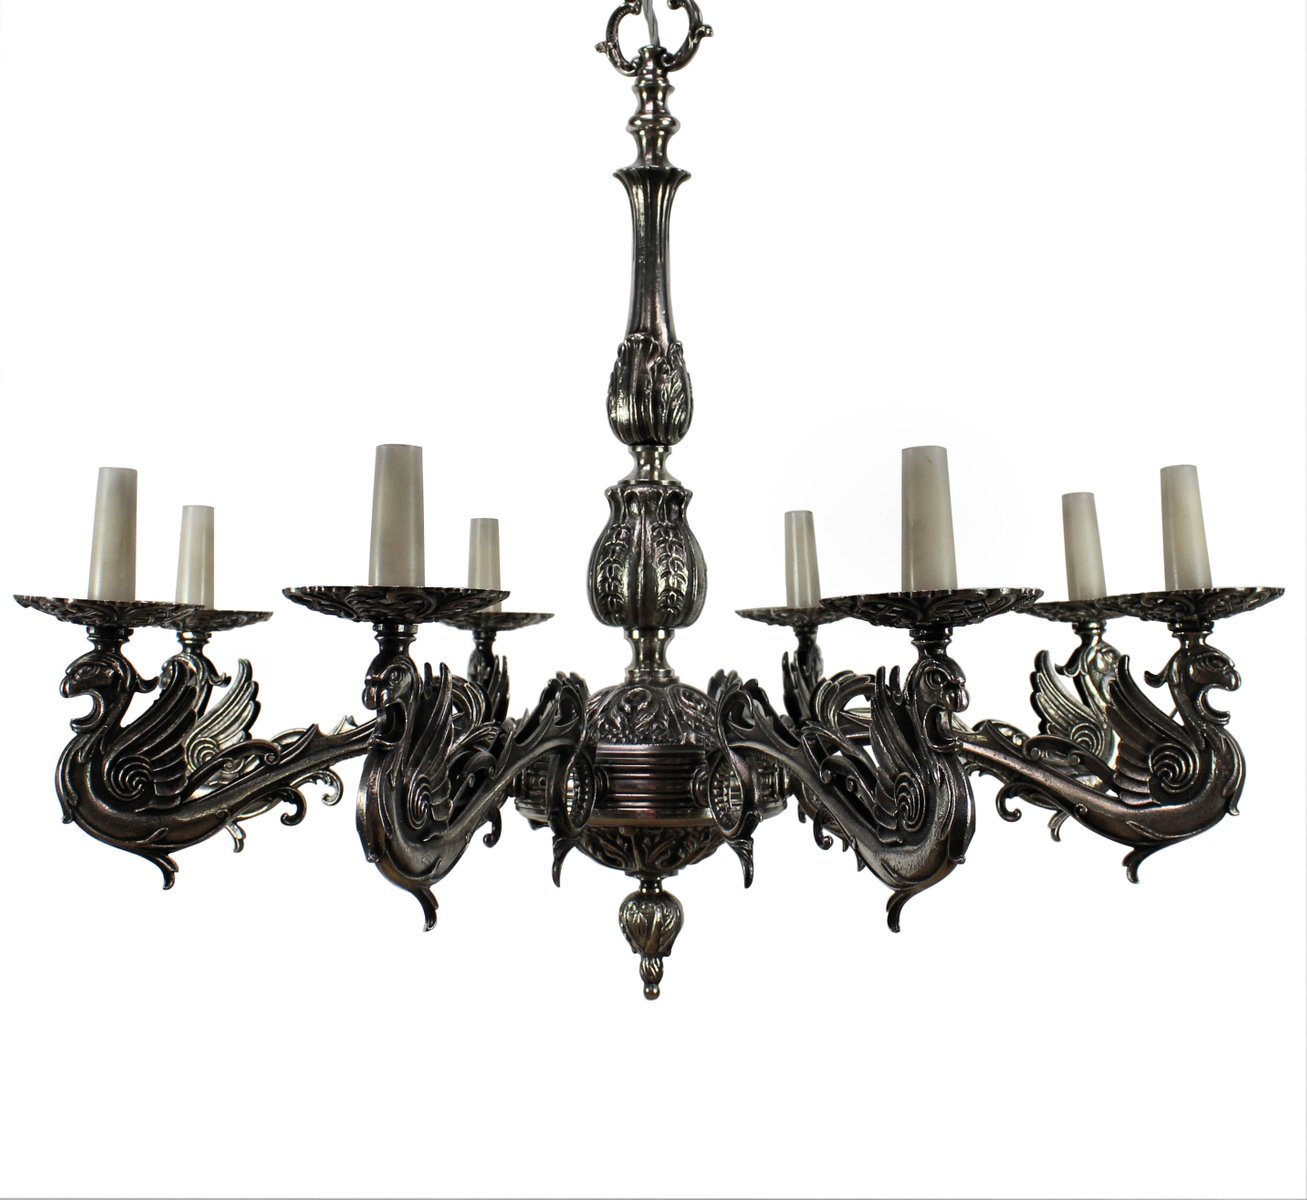 French silvered bronze gothic style chandelier 1900s for sale at pamono french silvered bronze gothic style chandelier 1900s aloadofball Gallery